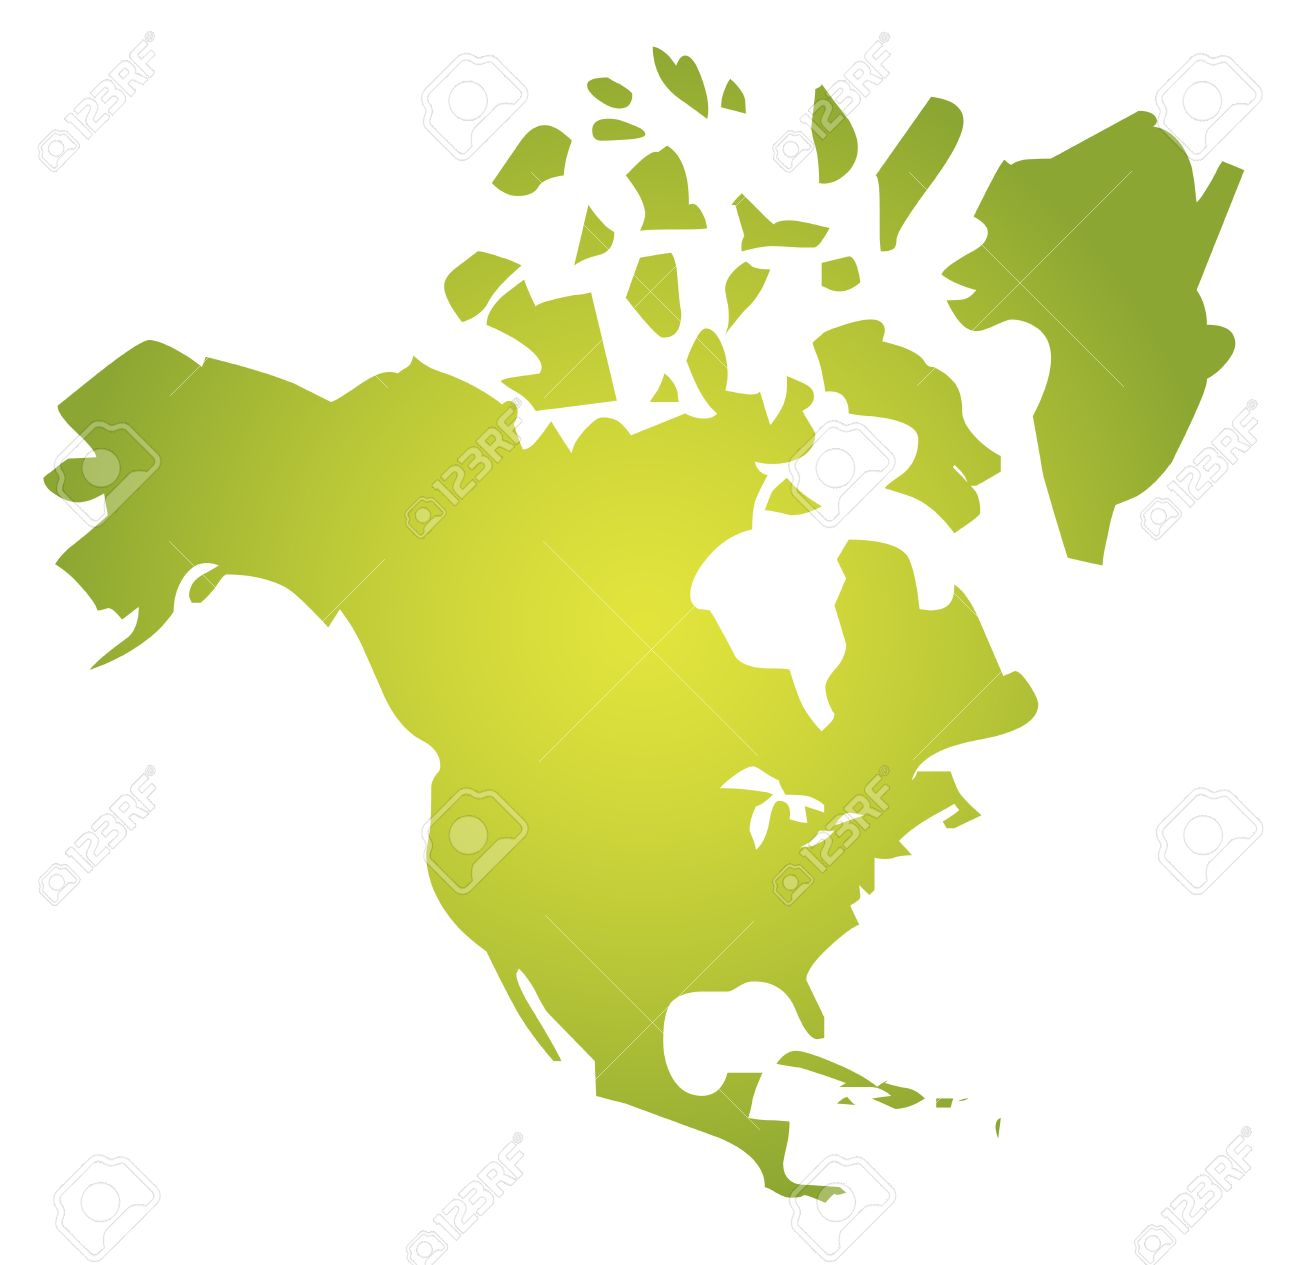 Map Of Usa And Canada And Mexico.Map Of The North American Continent Usa Canada Mexico Stock Photo